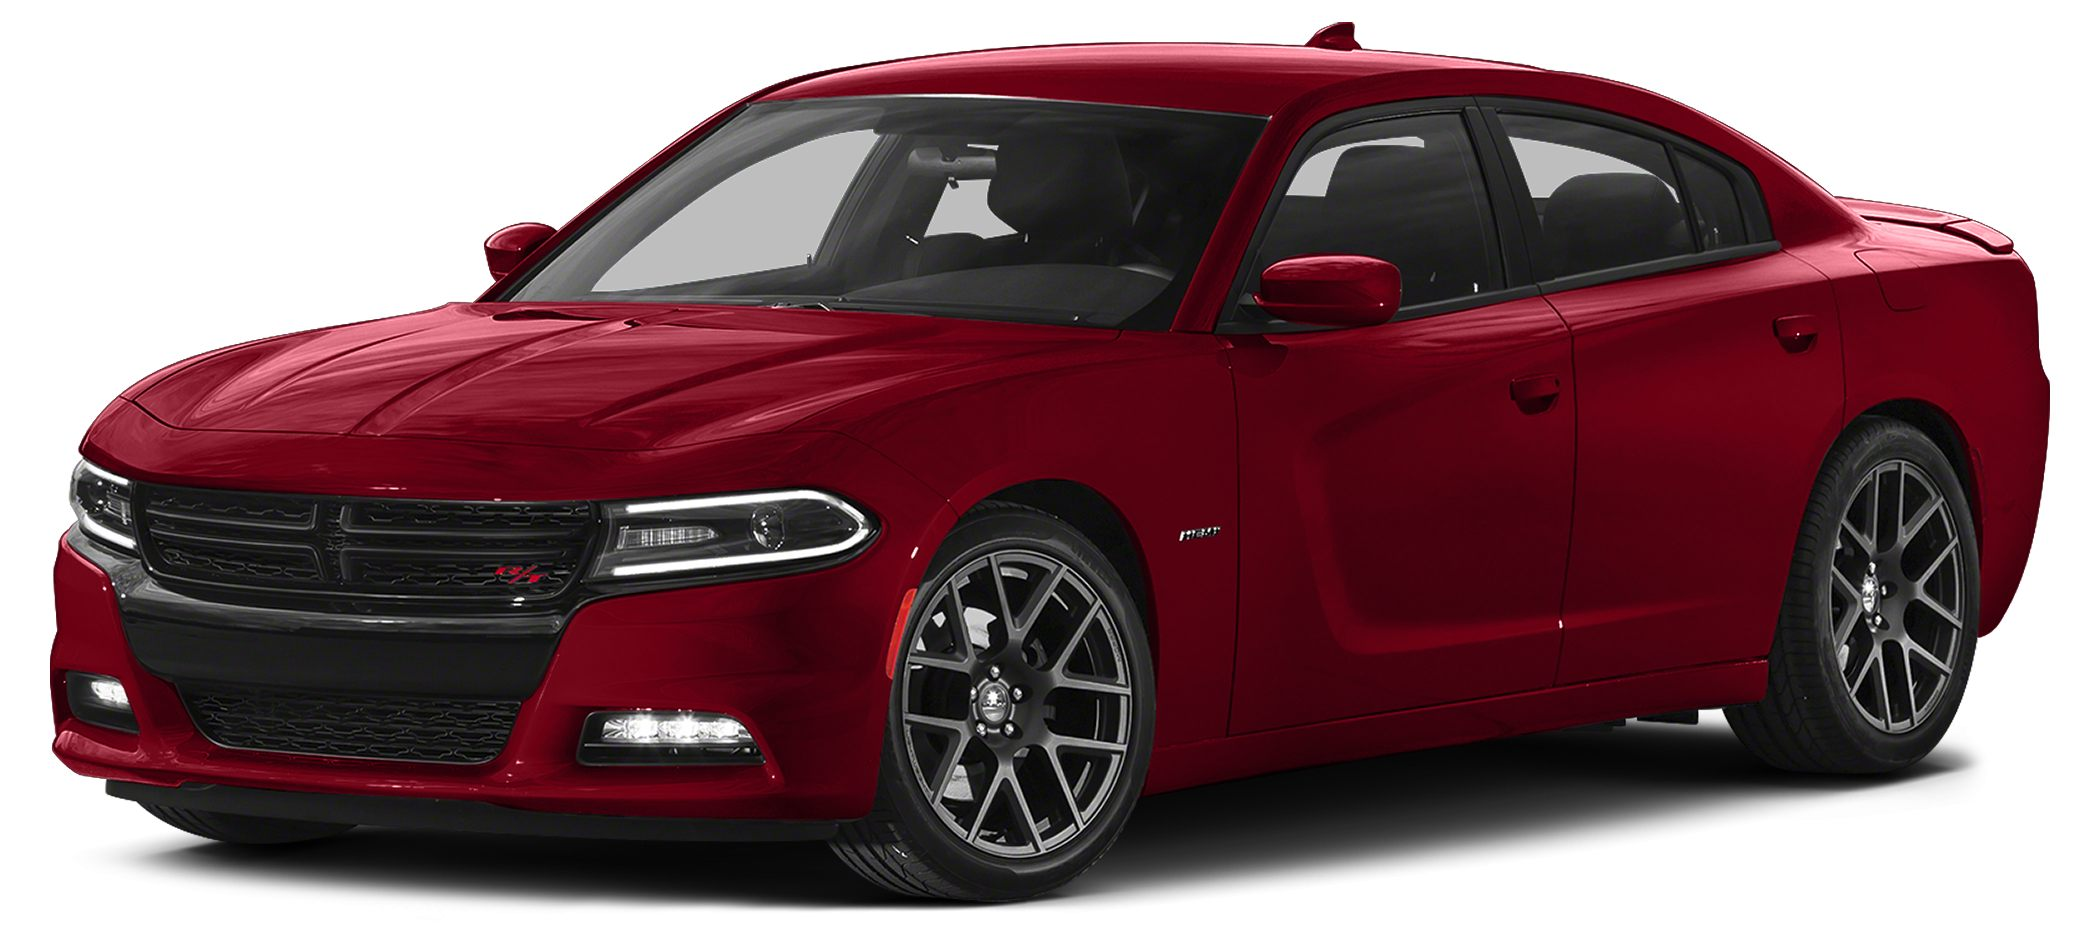 2016 Dodge Charger RT Miles 0Color Redline Red Tricoat Pearl Stock D3057 VIN 2C3CDXCT9GH133